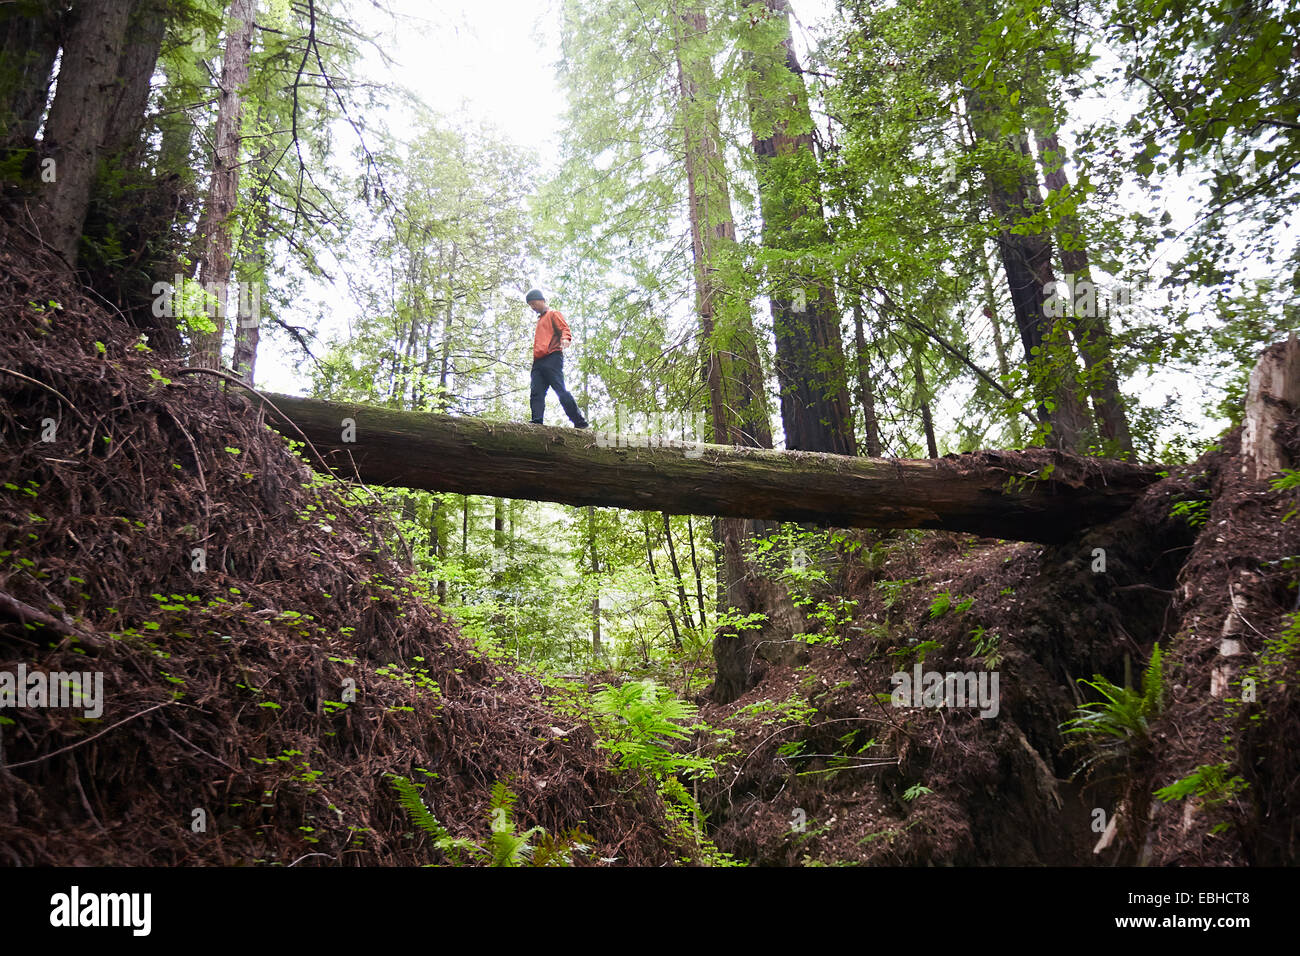 Man crossing fallen tree trunk, Humboldt Redwoods State Park, California, USA - Stock Image